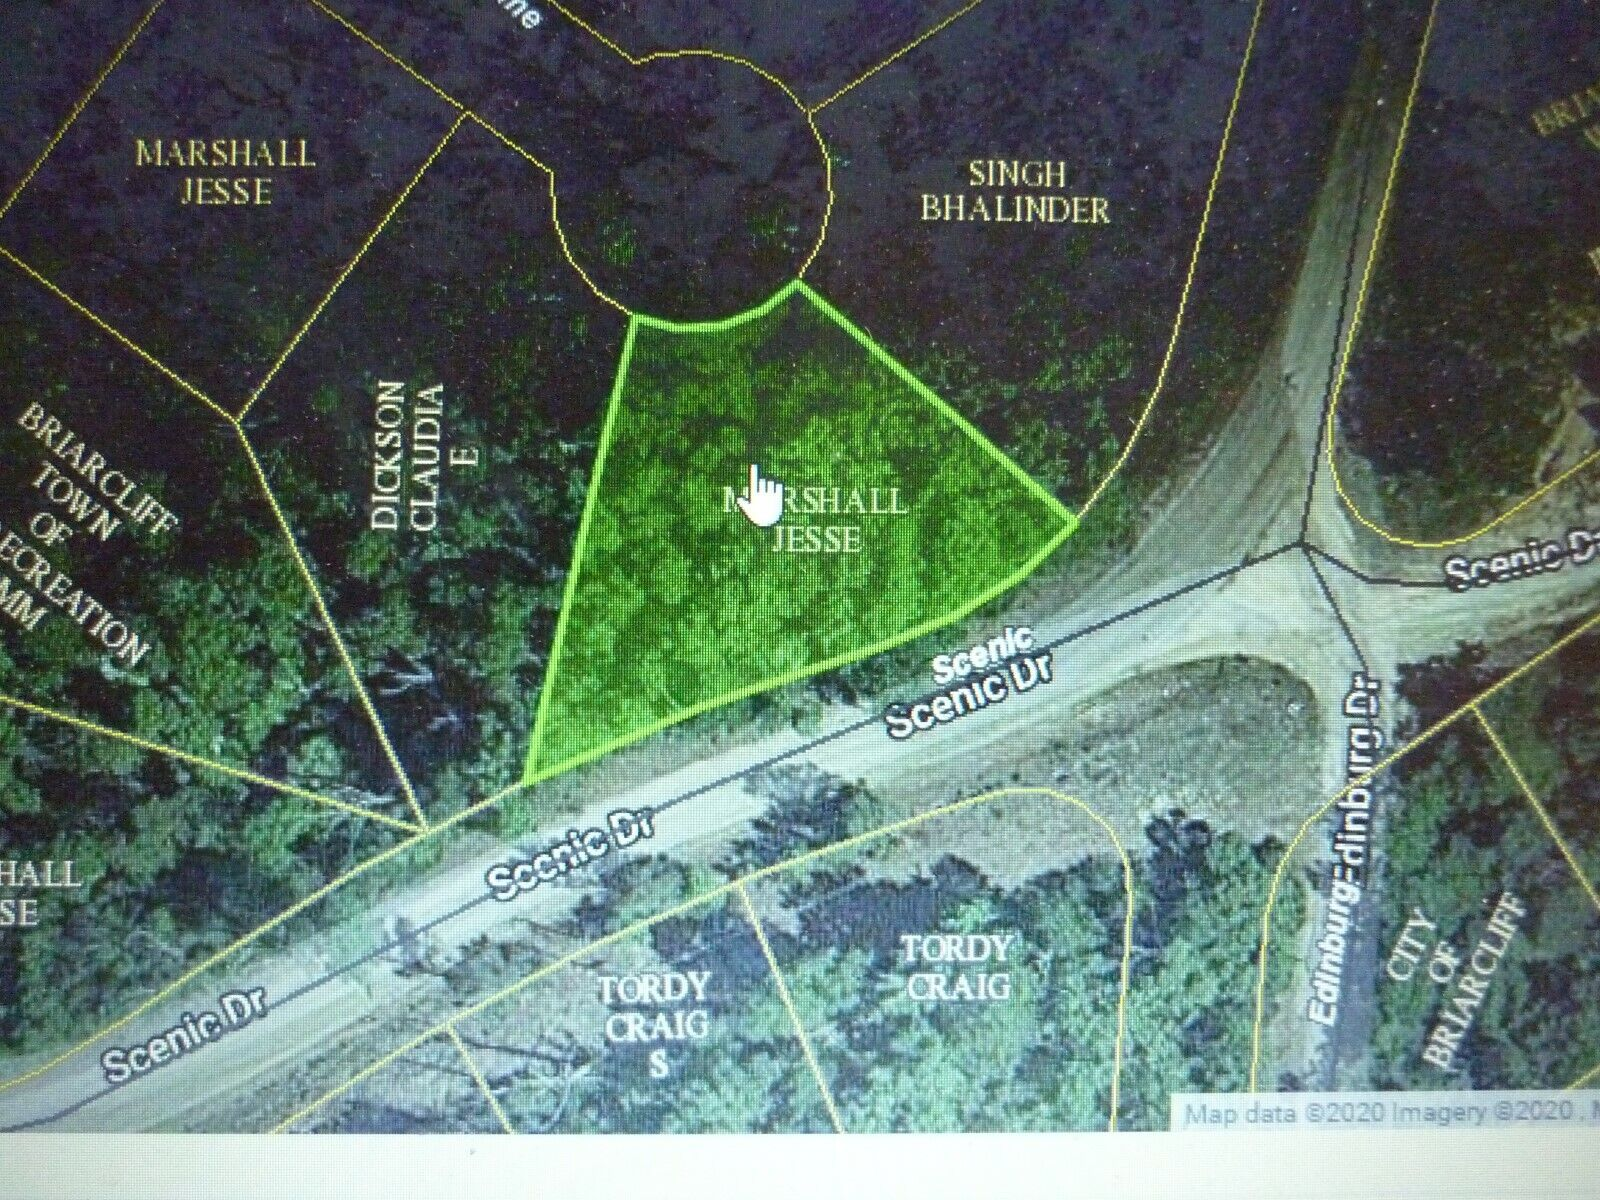 11708 Sq Feet .2688 Acre Briarcliff, AR- 1 Mile To Norfork Lake POWER 100 Feet - $4.25